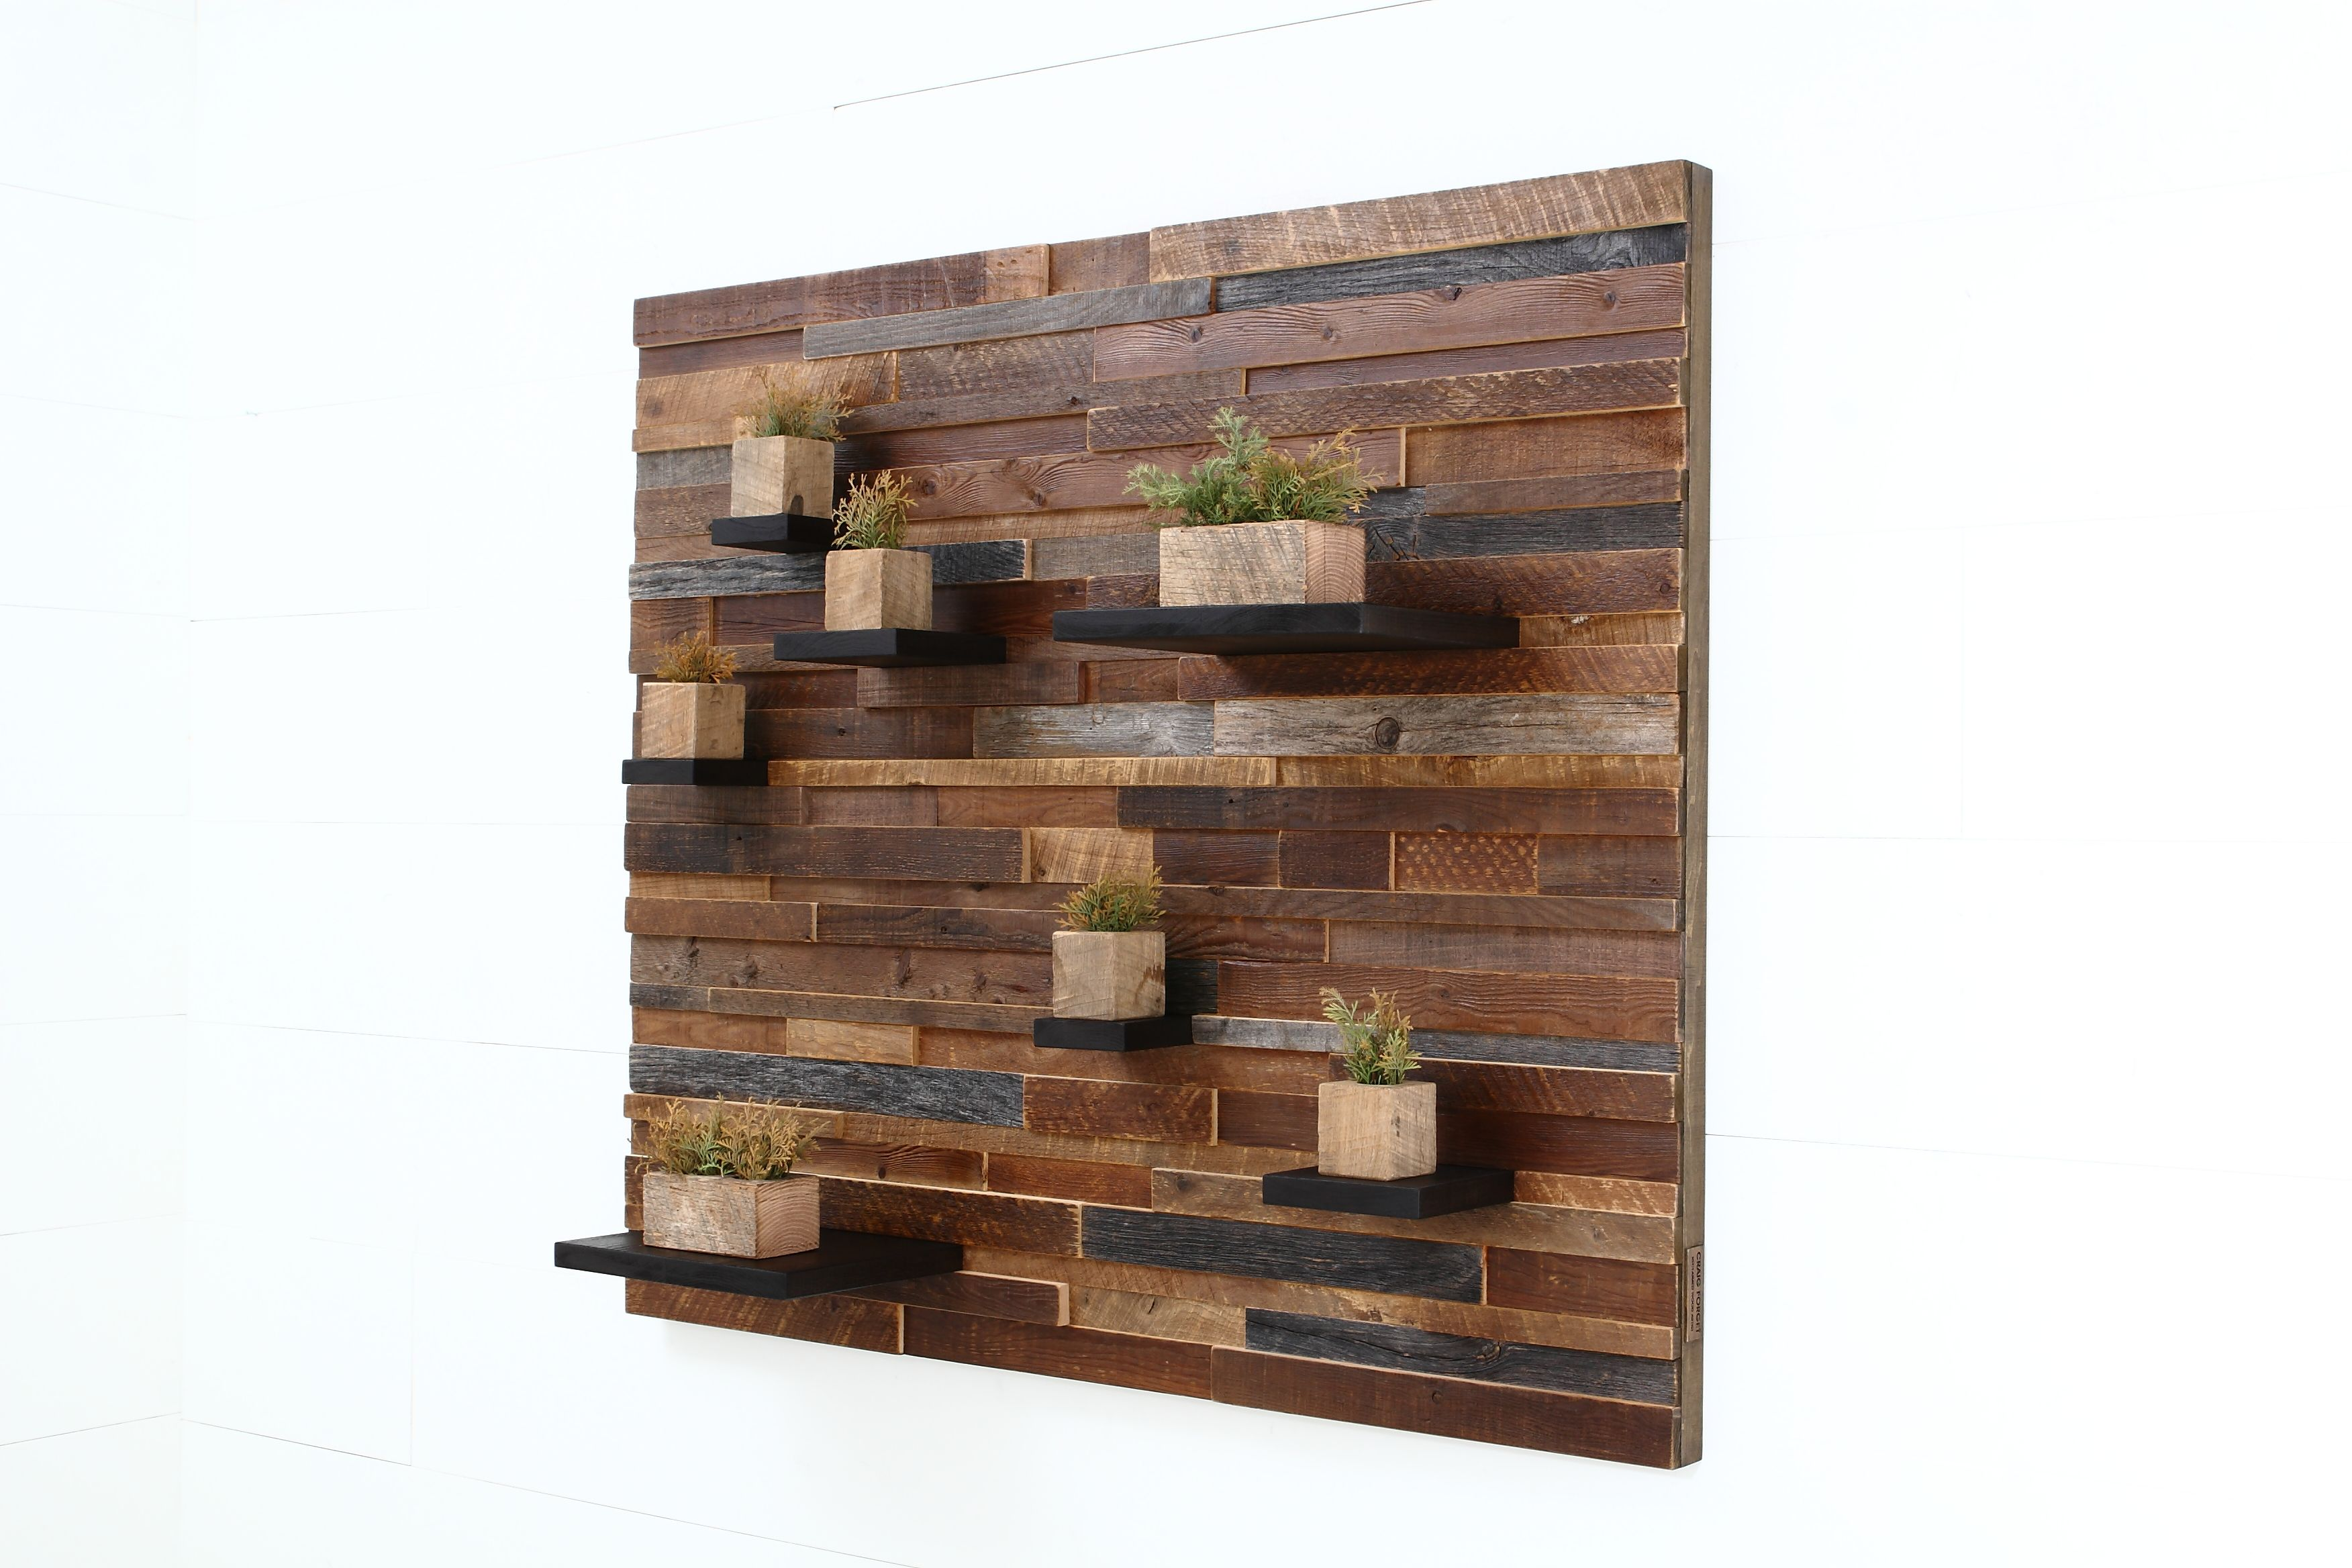 Hand Crafted Floating Shelf Artwork Made Of Old Reclaimed Barn Wood